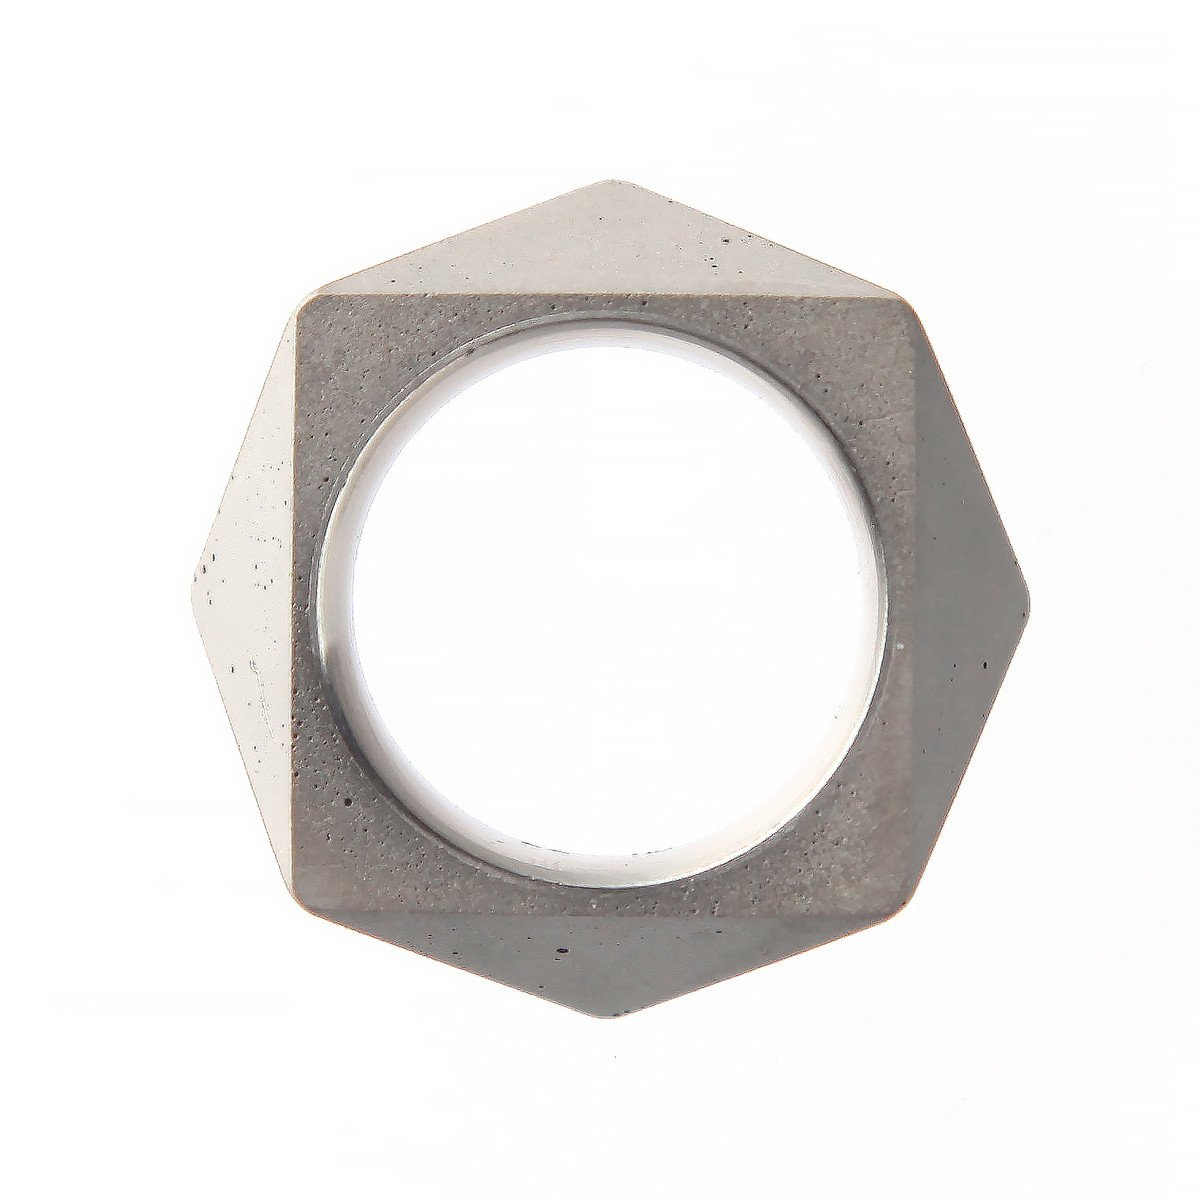 Polygon Concrete Ring -33562